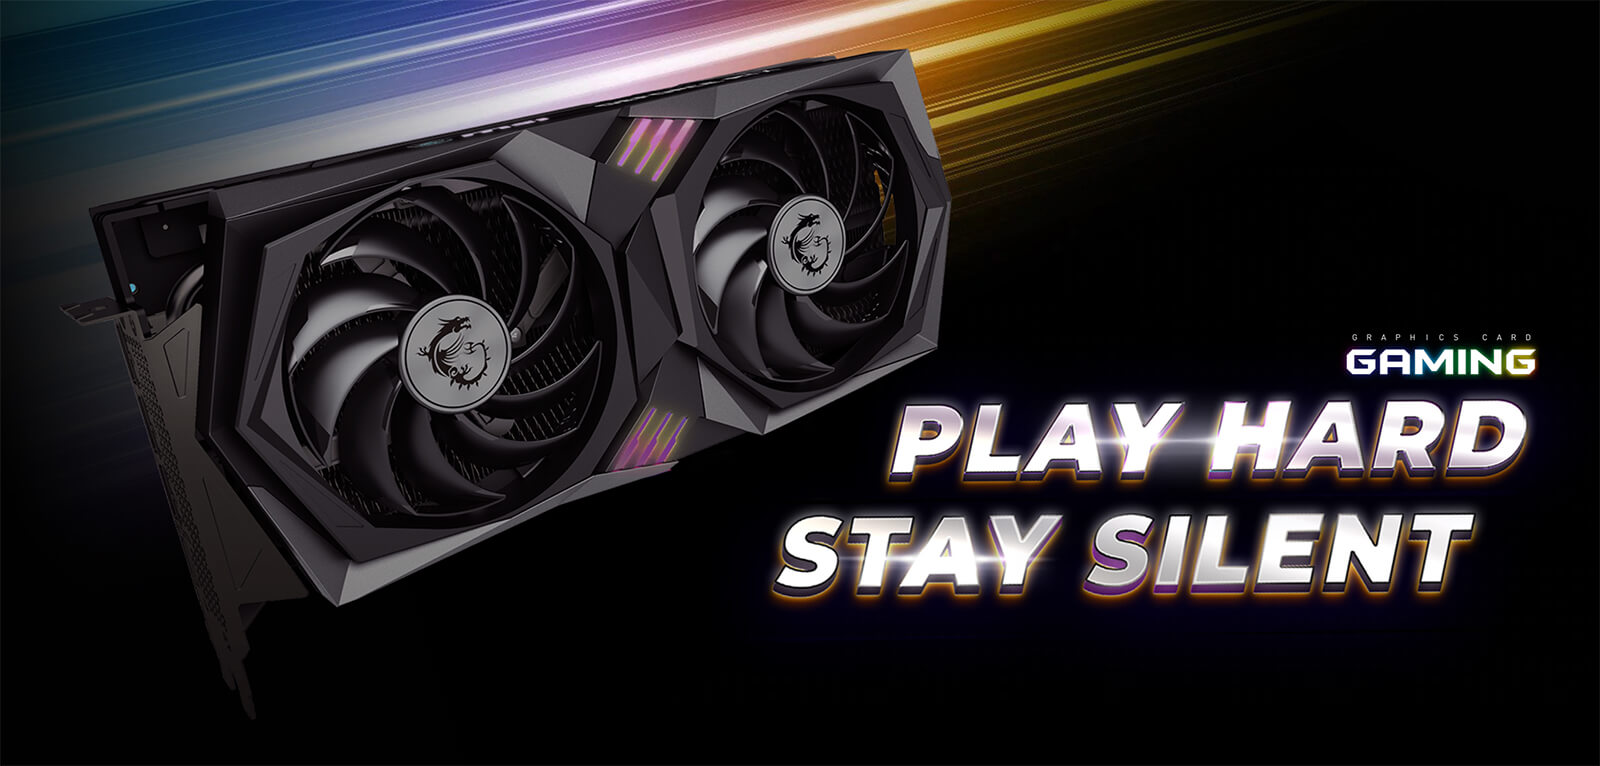 Msi Geforce Rtx™ 3060 Gaming 12g Features